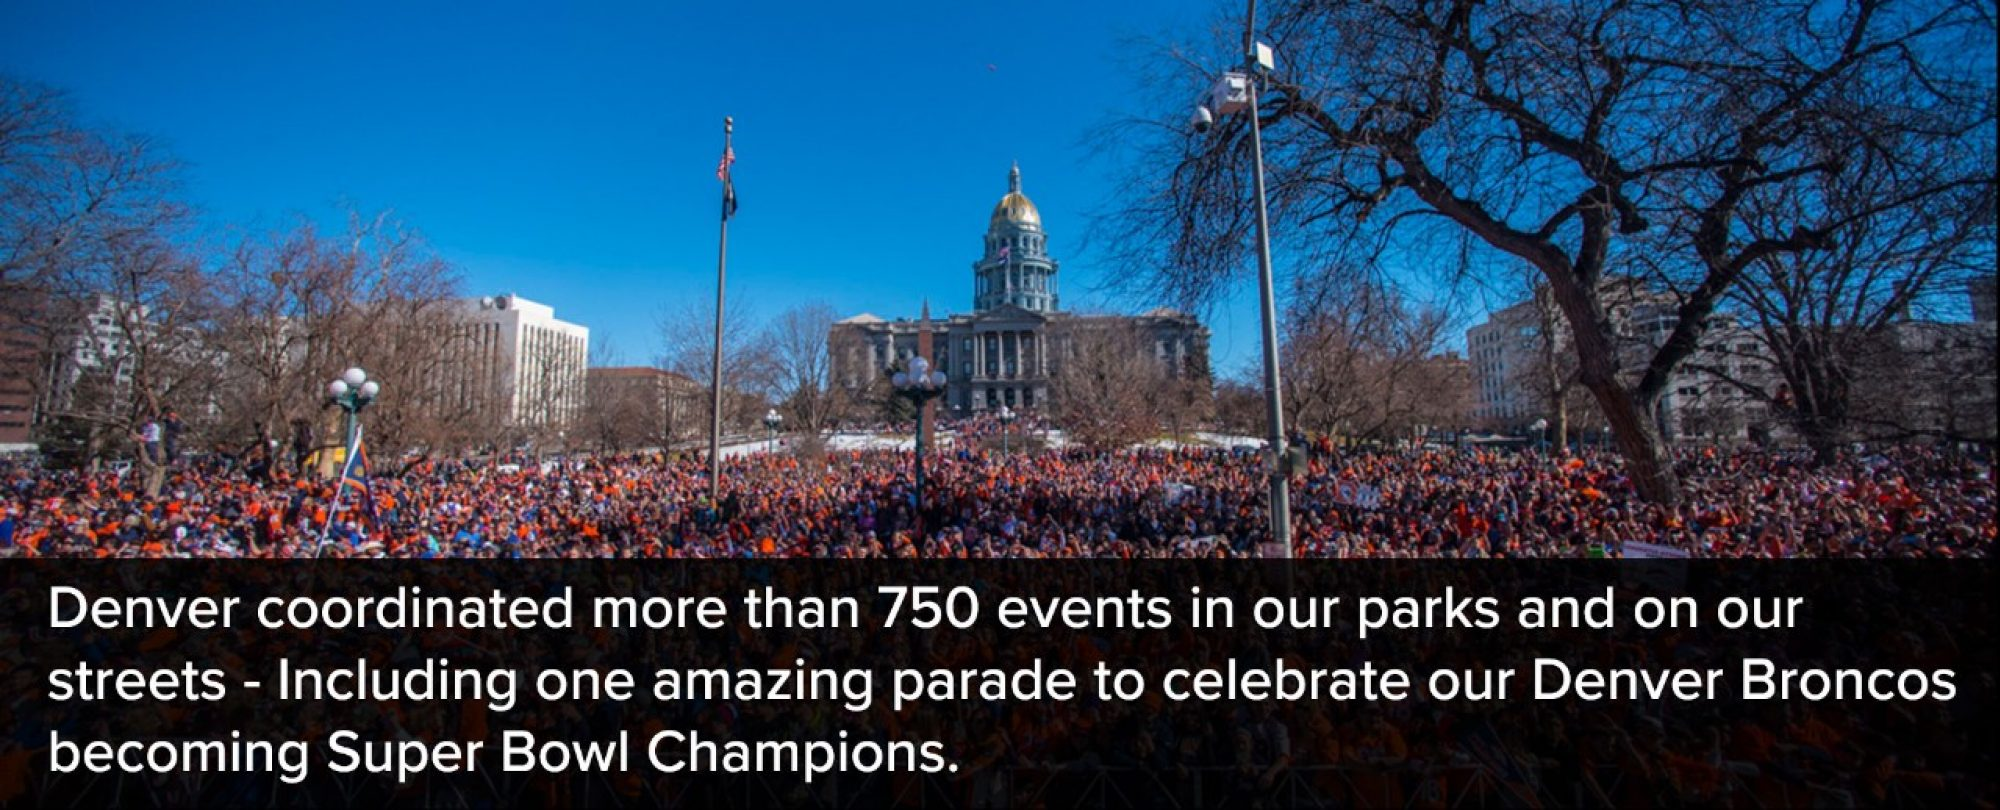 Photo of the Denver Broncos World Championship parade event at Civic Center Park. Denver coordinated more than 750 events in our parks and on our streets - Including one amazing parade to celebrate our Denver Broncos becoming Super Bowl Champions.